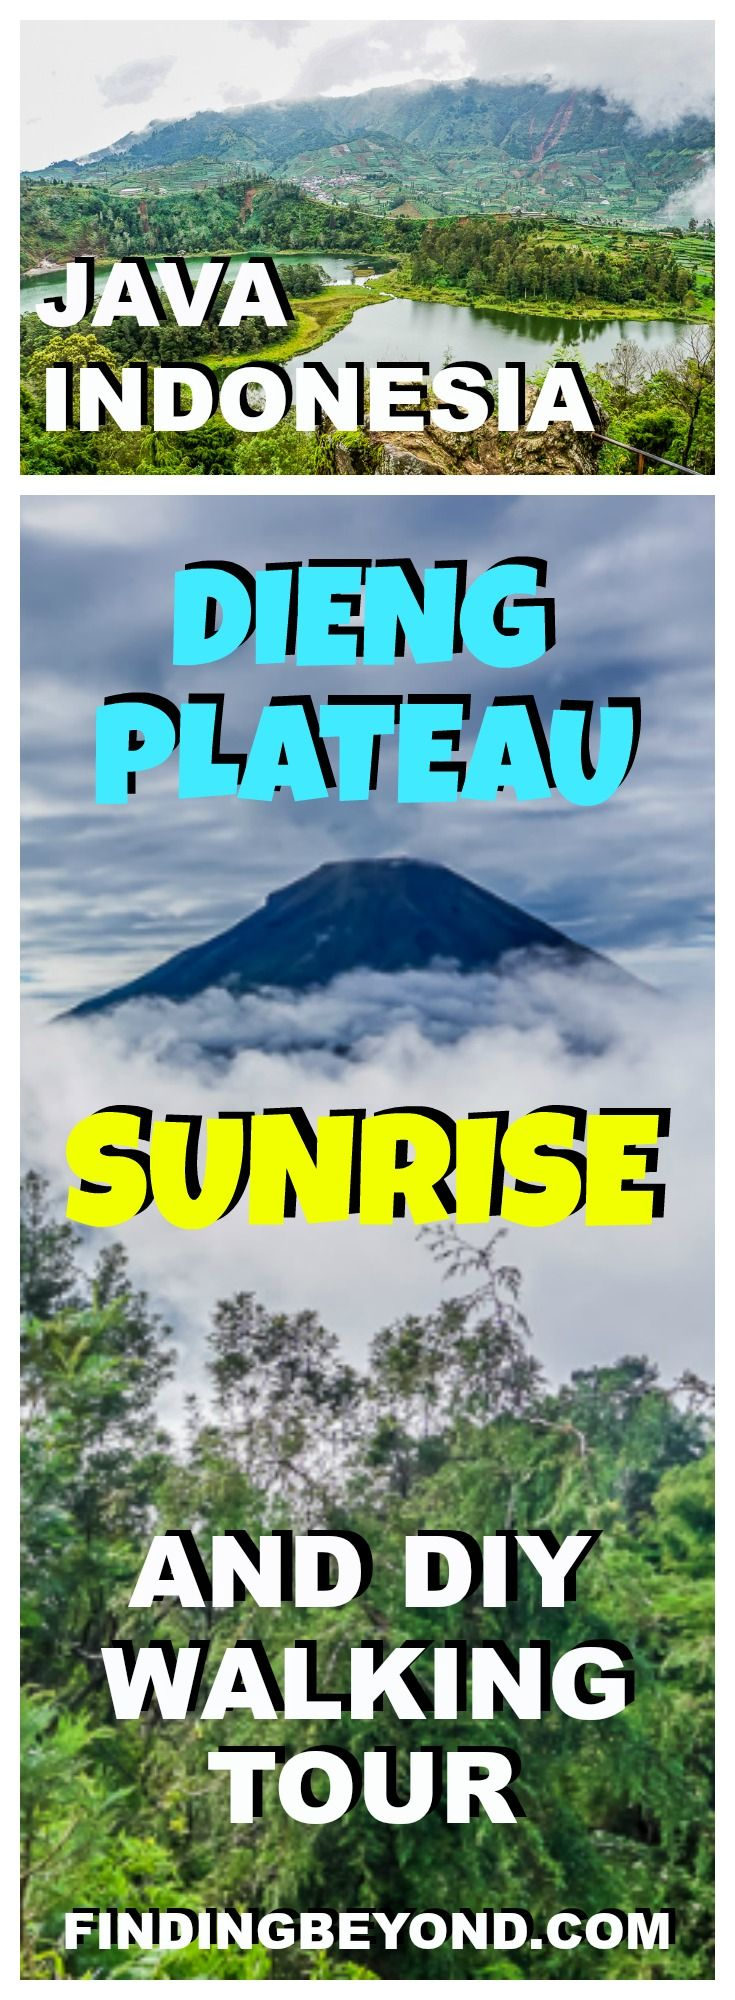 Check out our Dieng Plateau sunrise and DIY walking tour in Java, Indonesia. You don't need a guide to see the soaring volcanoes, steaming craters and colourful lakes.